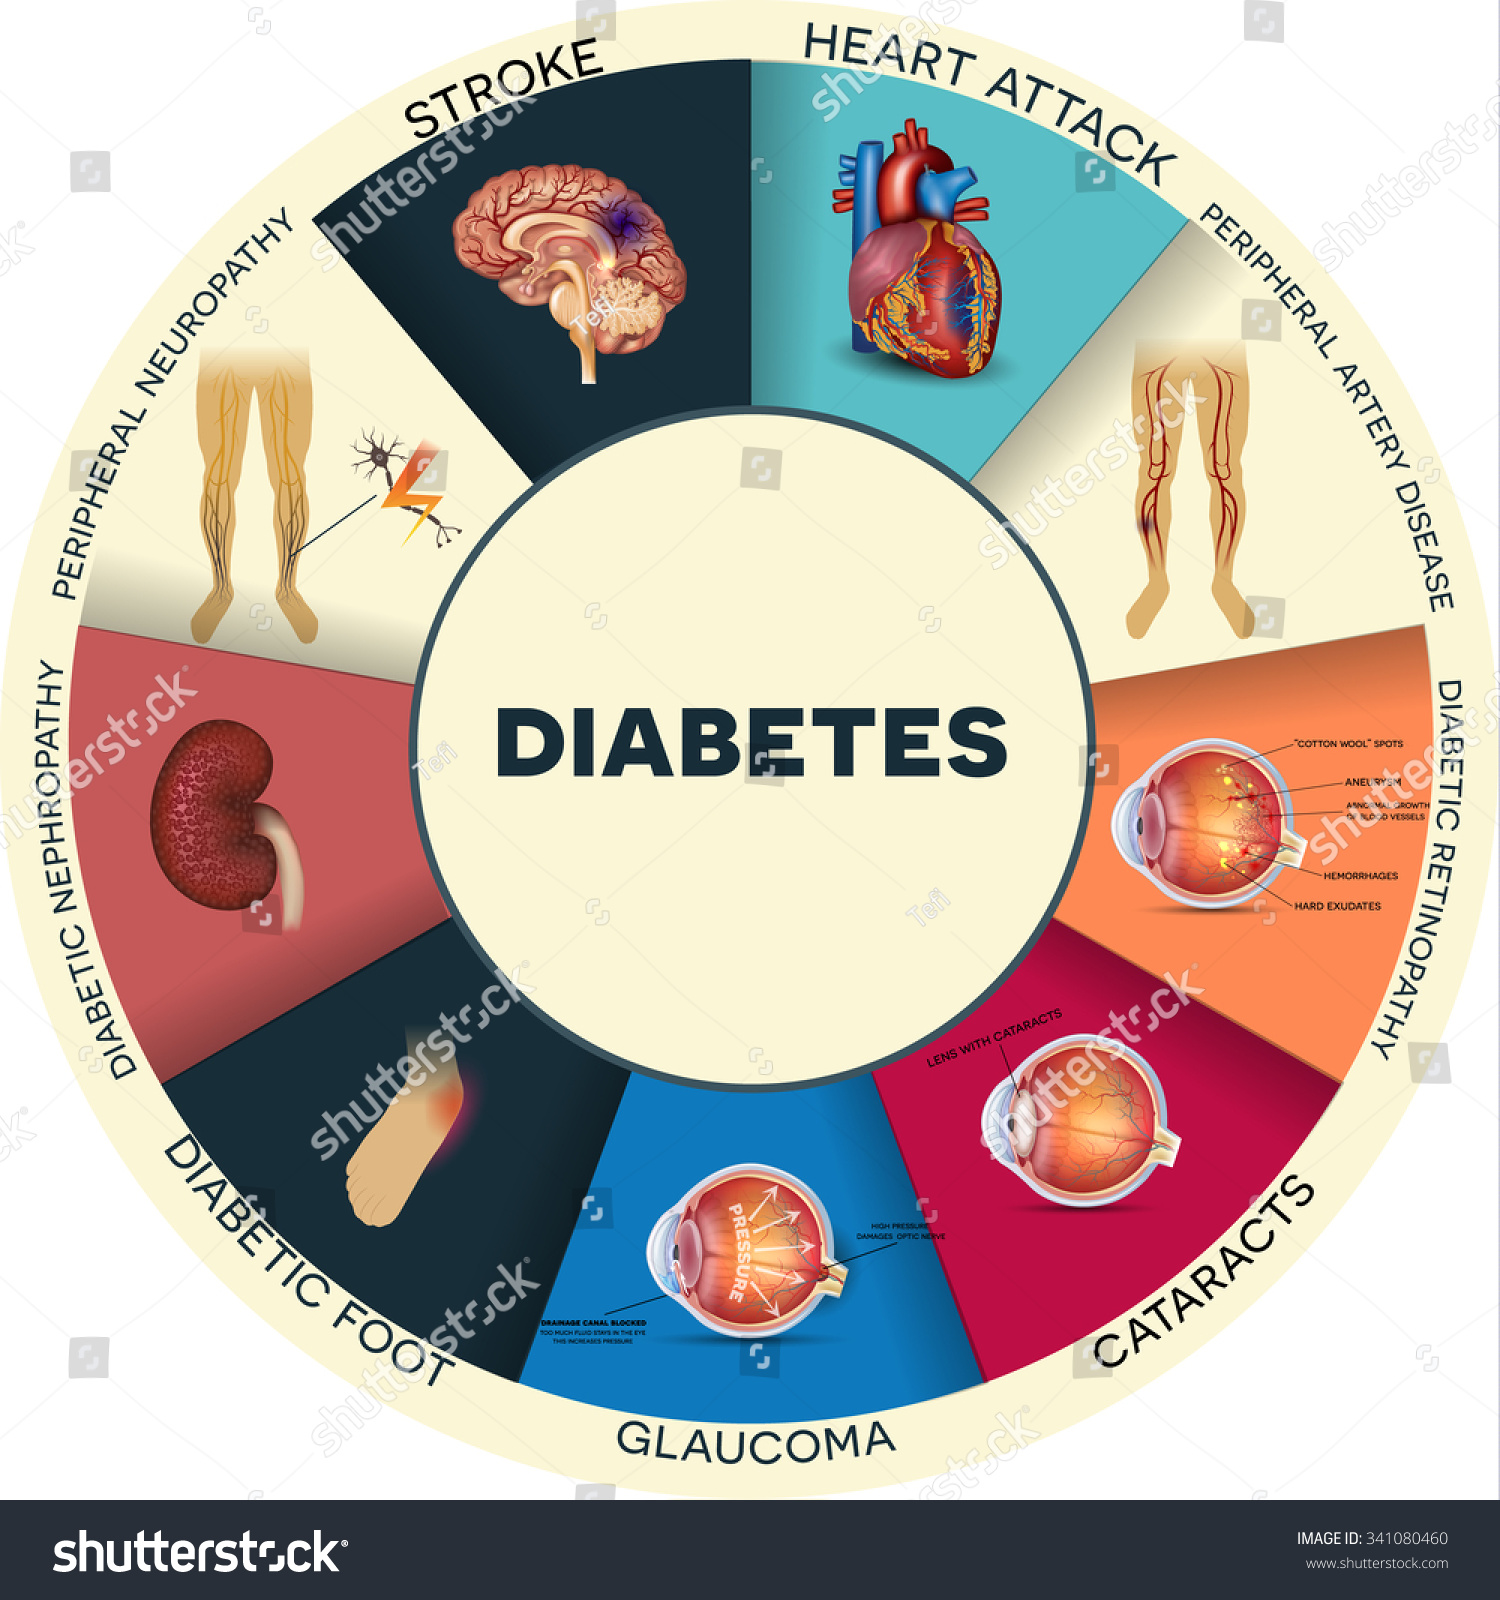 Diabetes Side Effects Clip Art